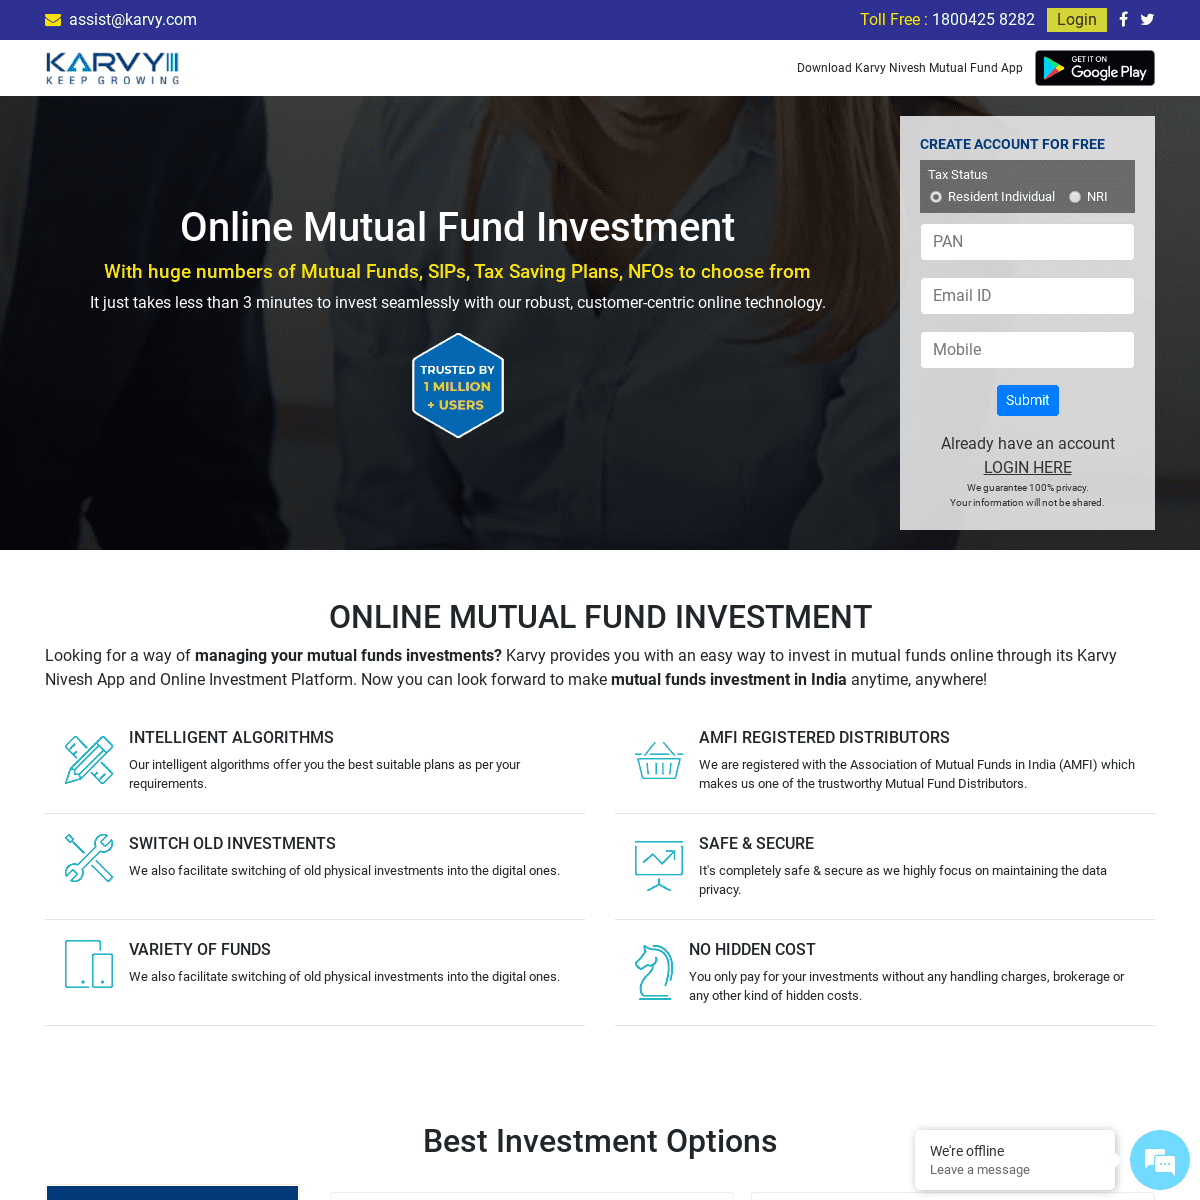 Online Mutual Funds Investment in India - Karvy Value